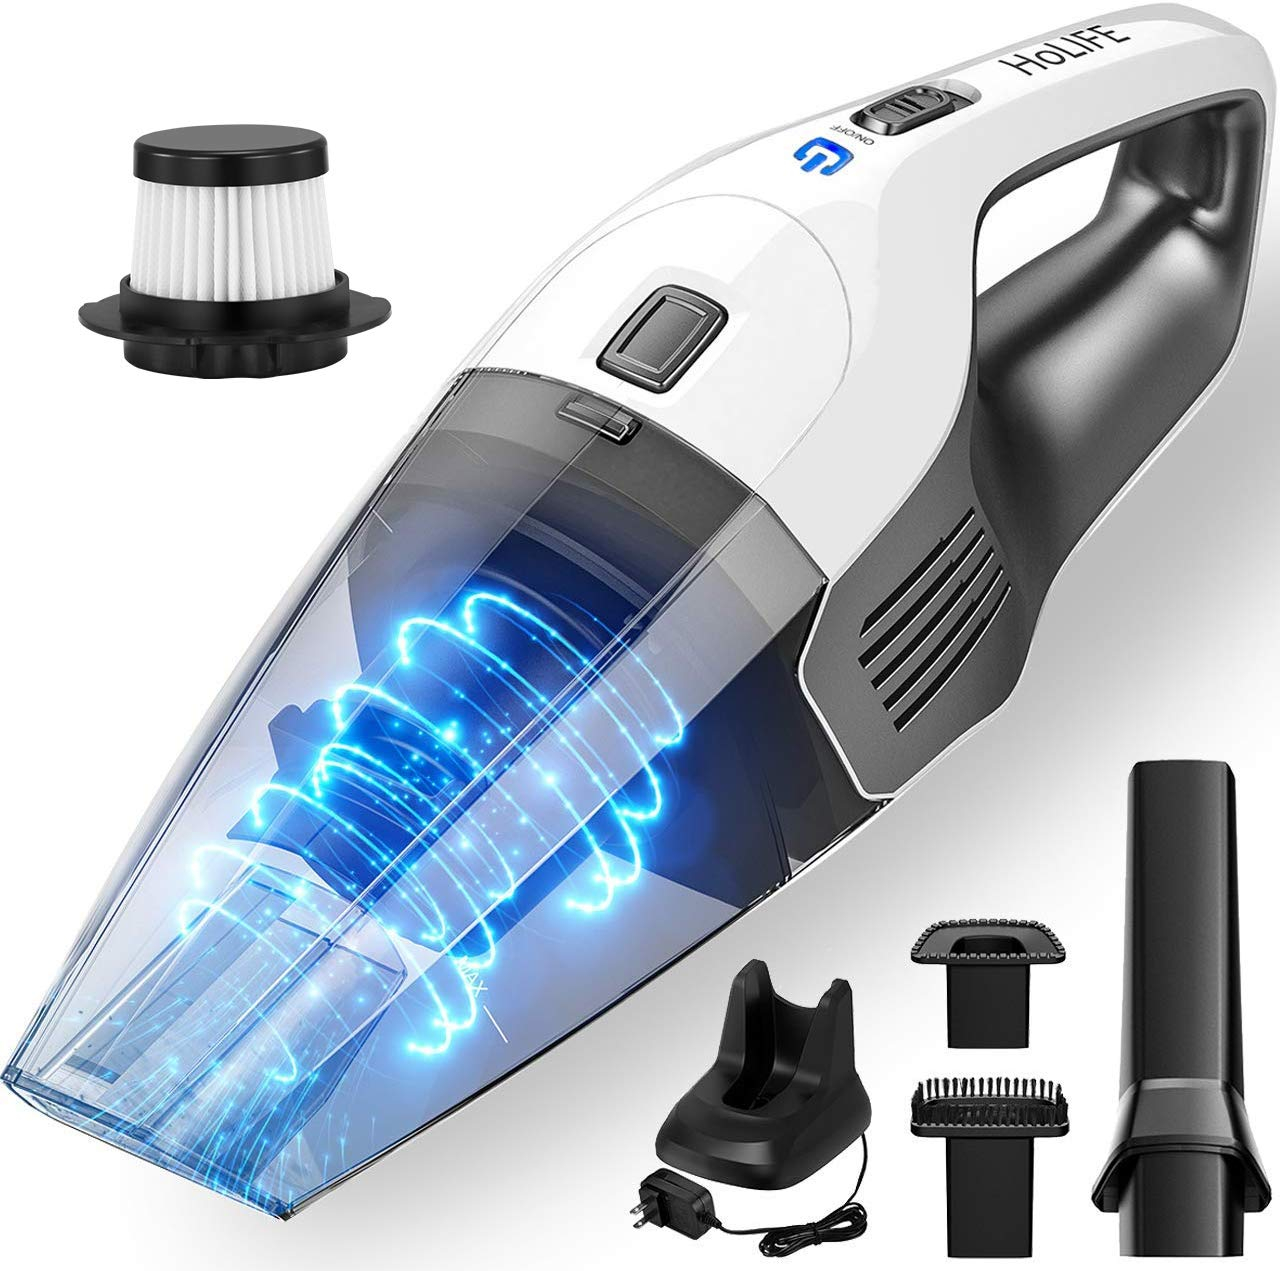 Holife 7000Pa Powerful Handheld Vacuum Cordless Cleaner Rechargeable, 30mins Hand Vacuum with Diploid HEPA Filtration, Lightweight Wet Dry 14.8V Lithium Hand Vac for Home Pet Hair Car Cleaning